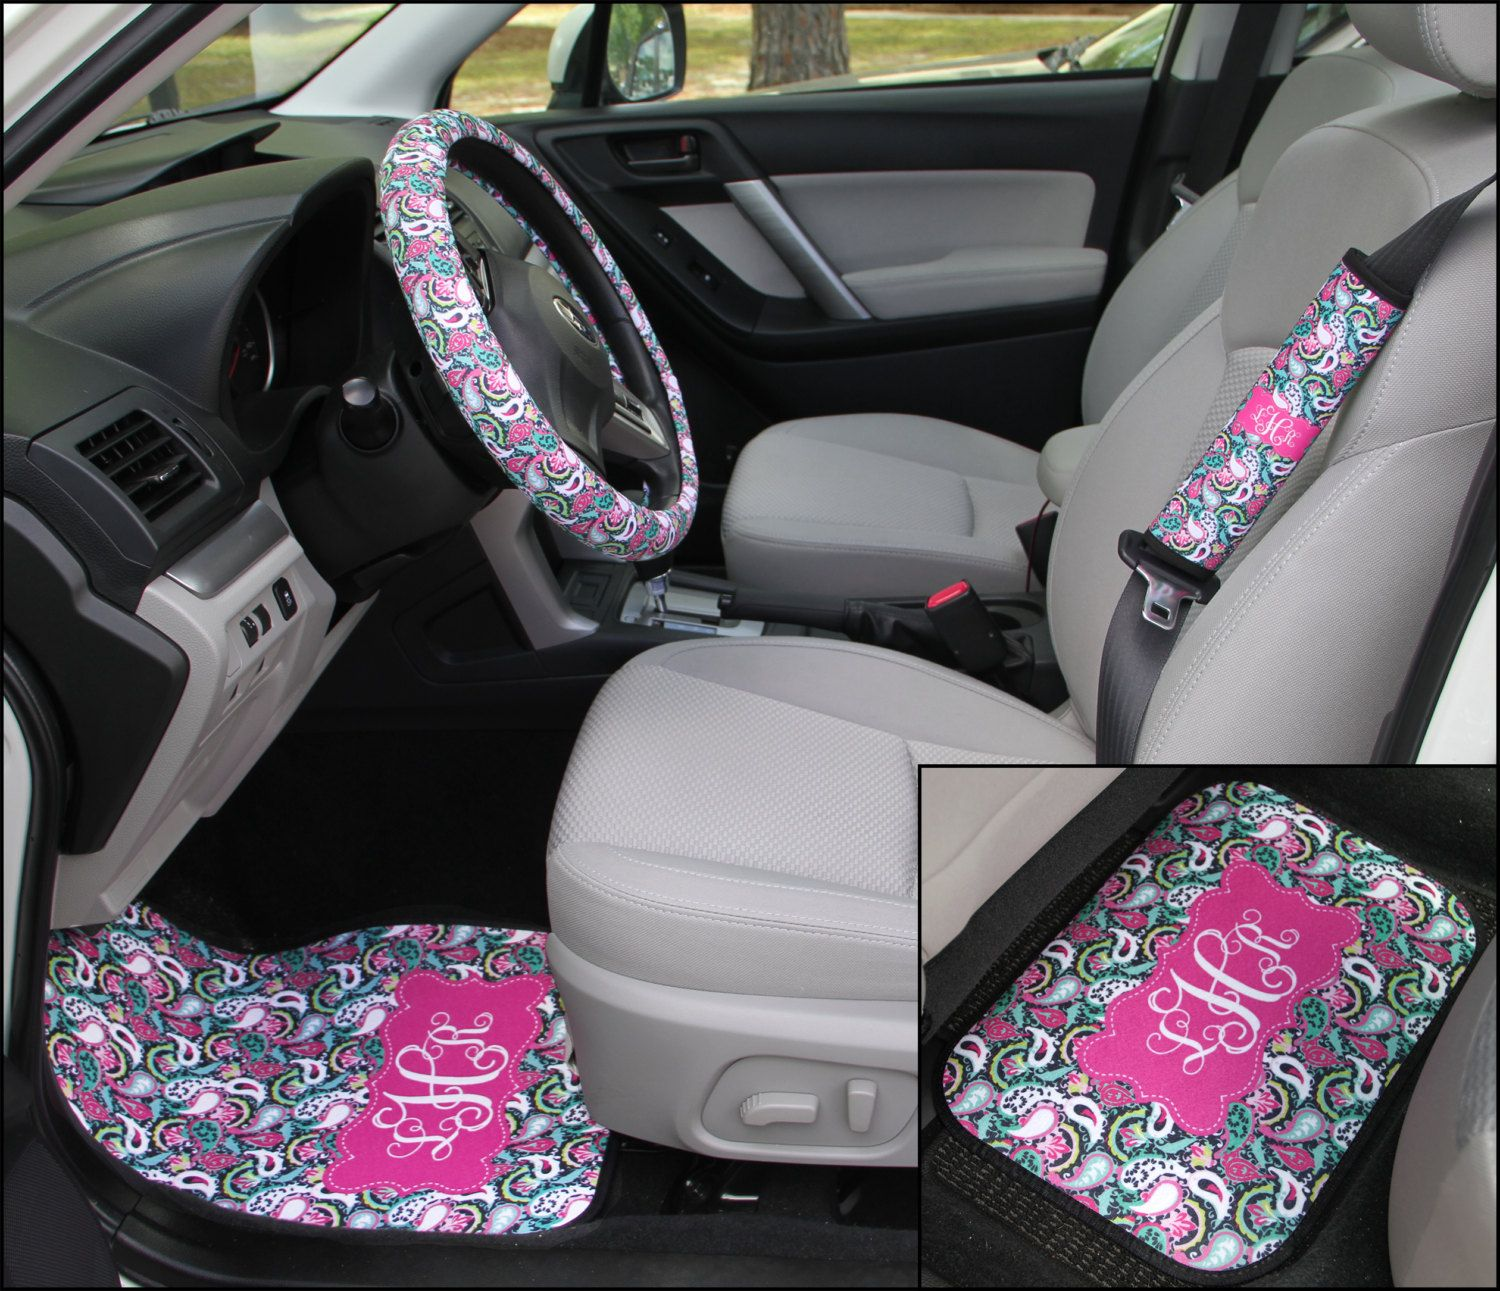 Strange Paisley Swirls Lilly Inspired Car Accessories Car Mats Alphanode Cool Chair Designs And Ideas Alphanodeonline